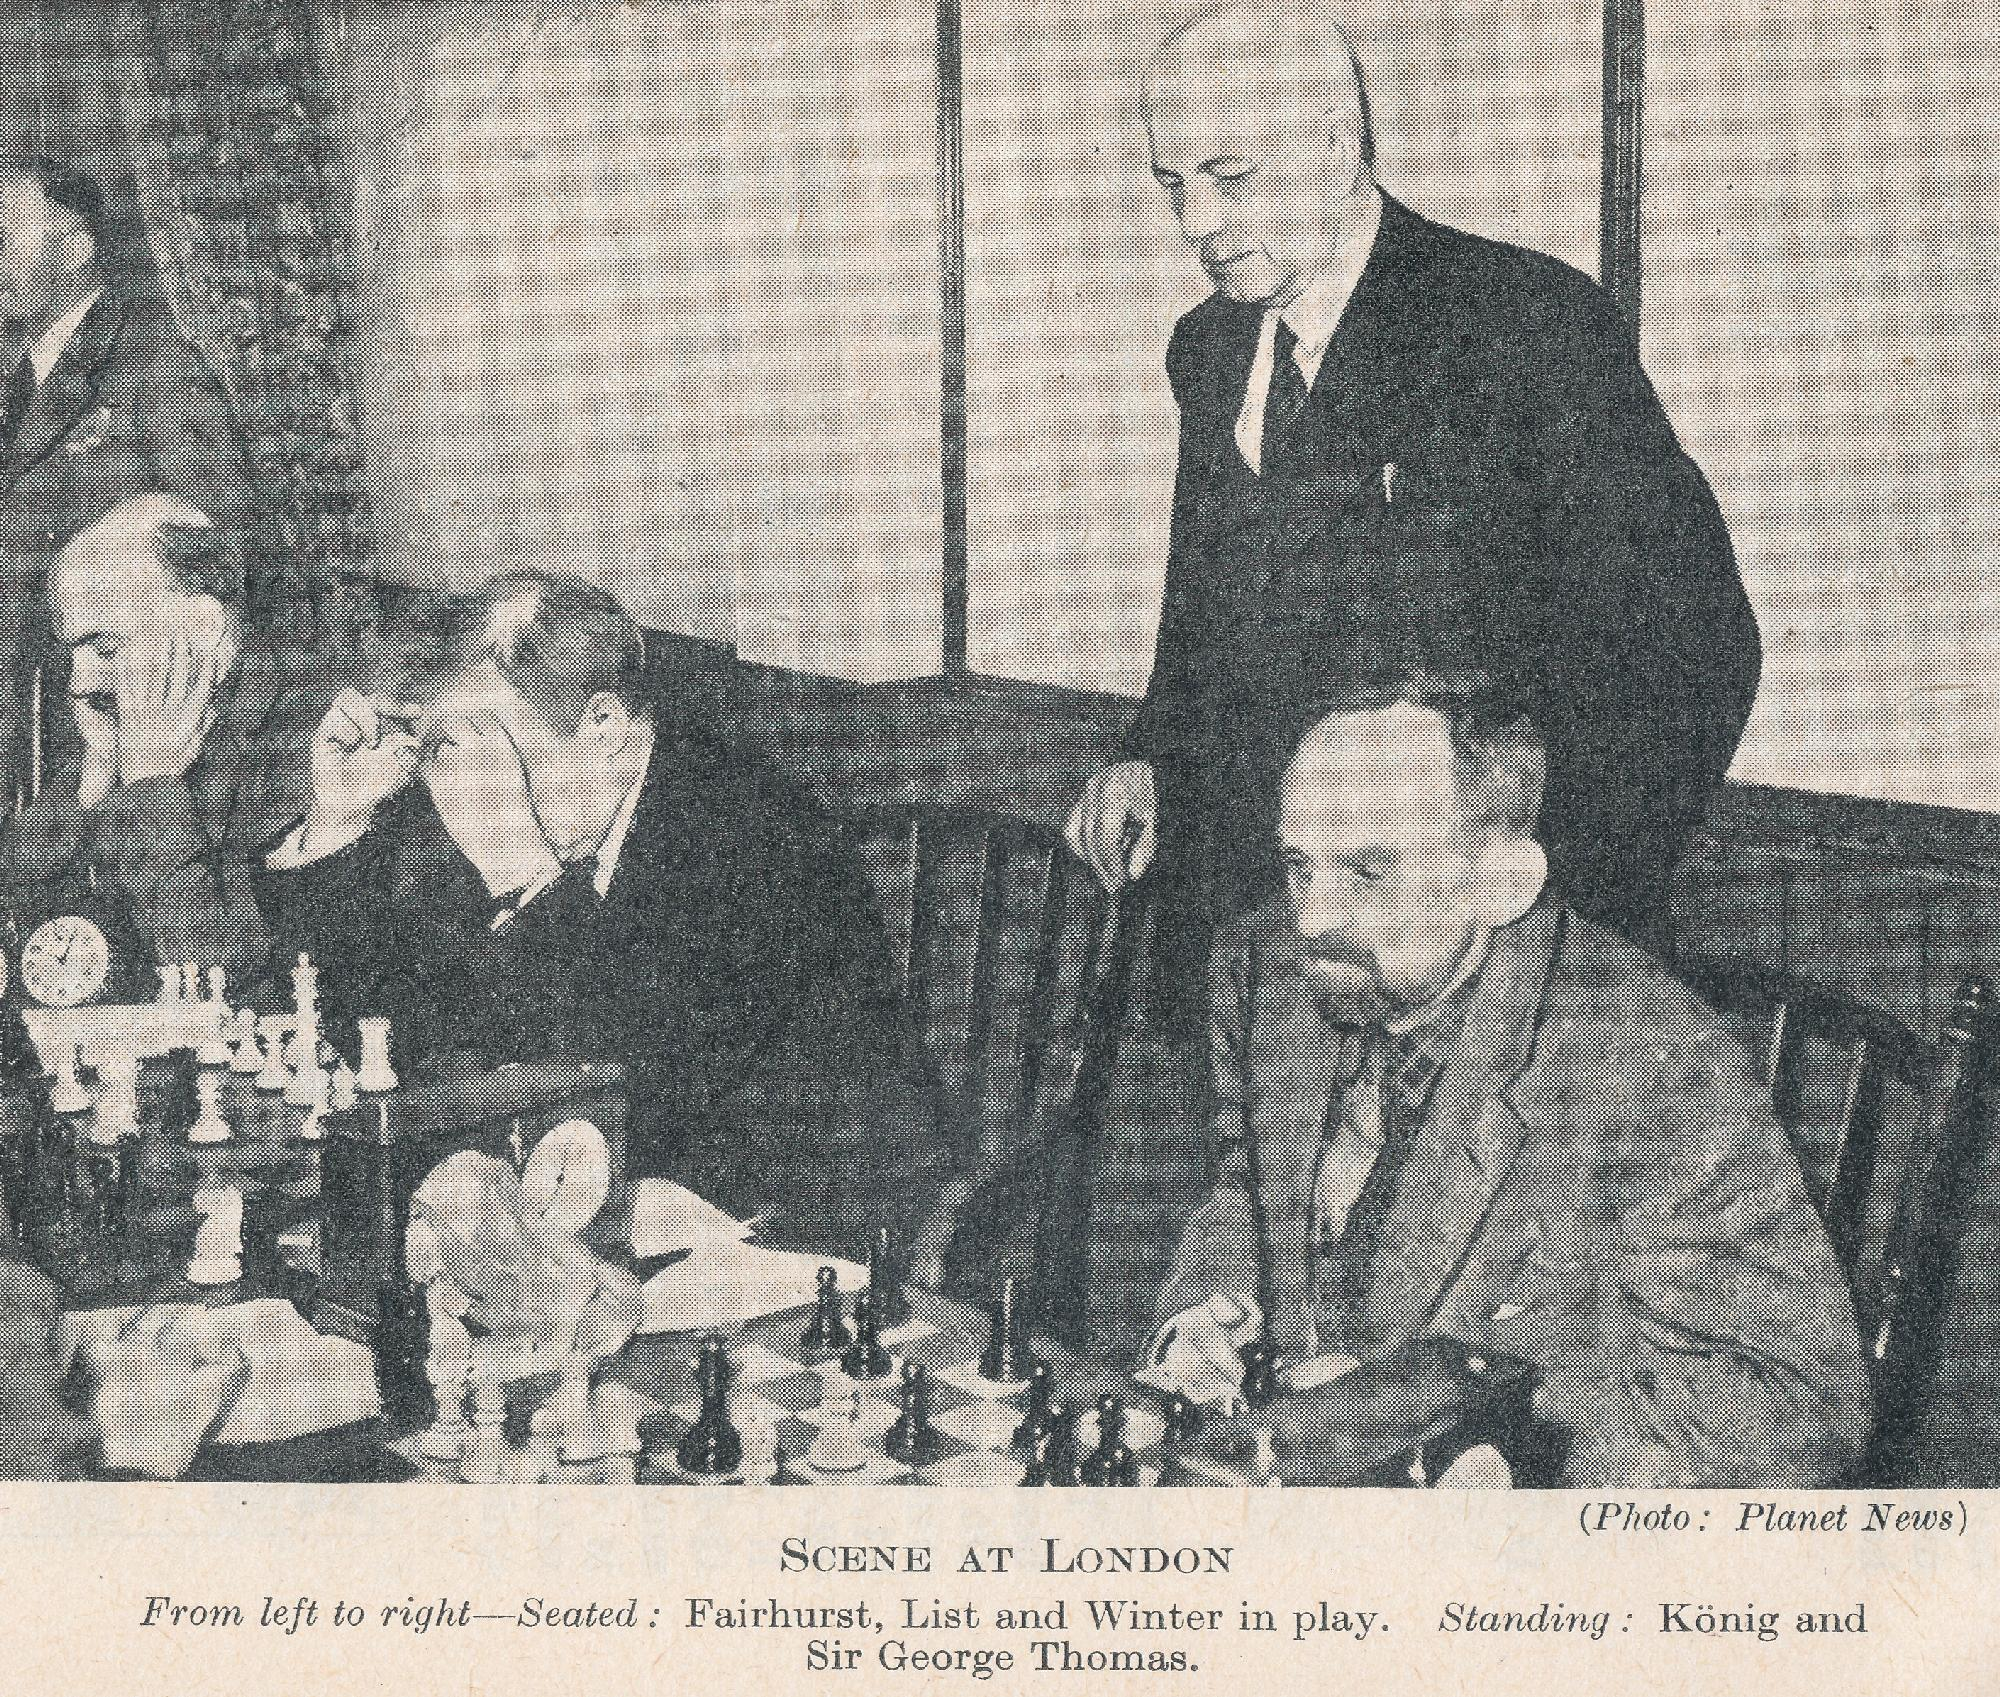 Scene at London. From left to right - Seated : Fairhurst, List and Winter in play. Standing König and Sir George Thomas